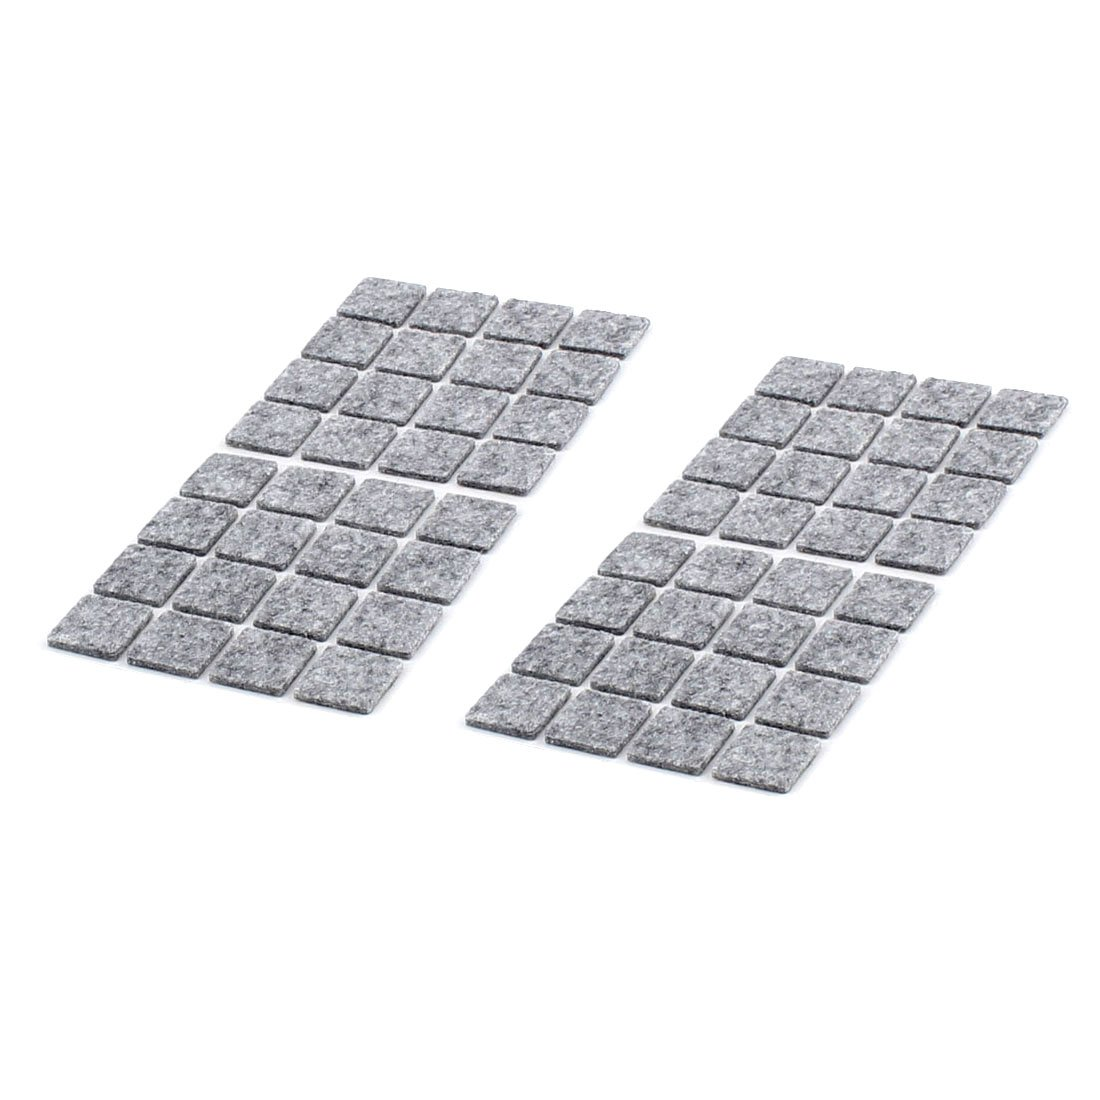 sourcingmap® Table Chair Legs Square Self Adhesive Furniture Felt Pads Cover Protector 18 x 18mm 64pcs Gray a16051100ux0793